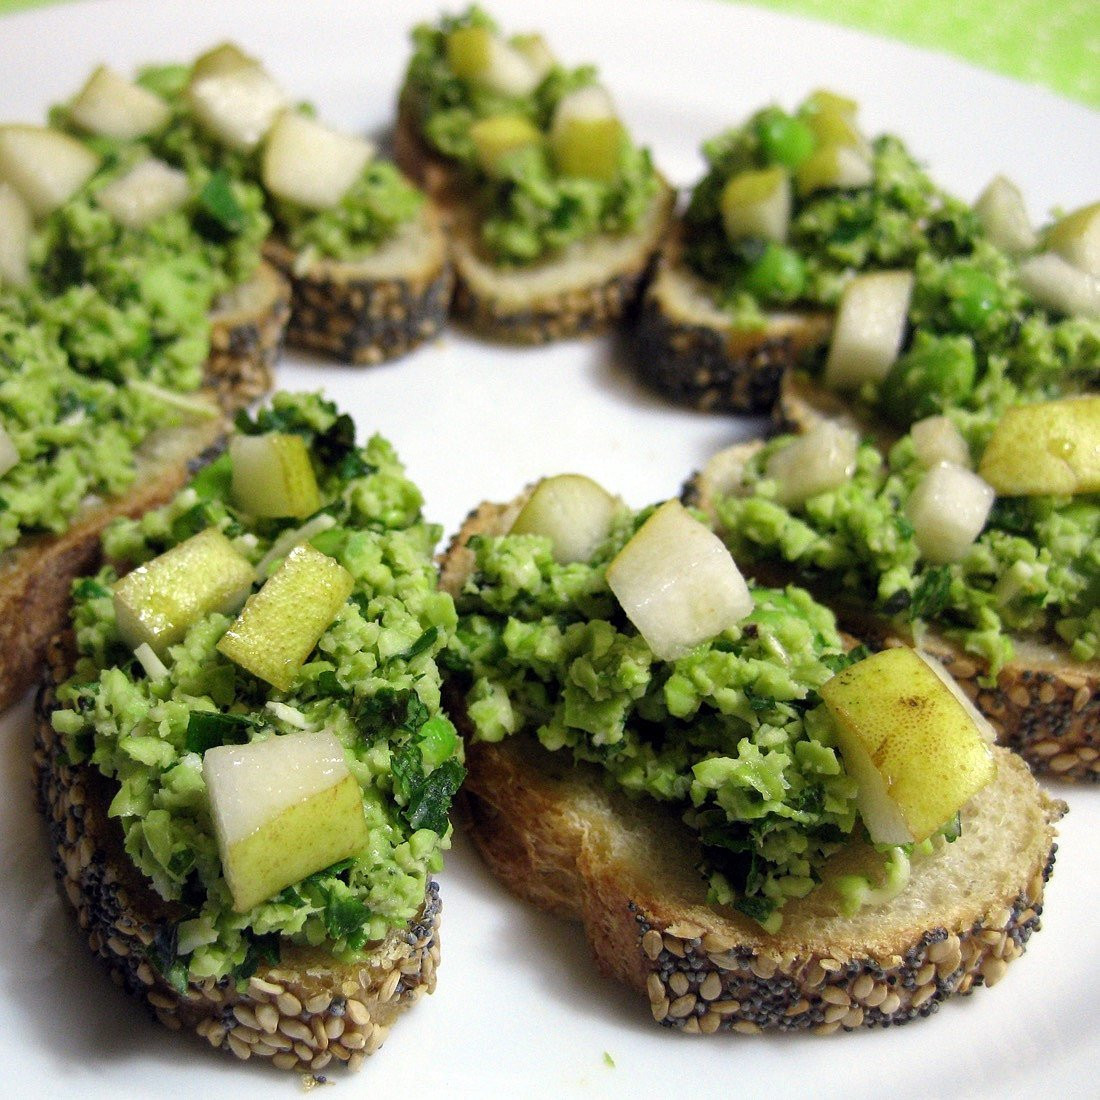 Healthy Appetizers Recipes  Recipe For Healthy Appetizer Made With Edamame and Pears